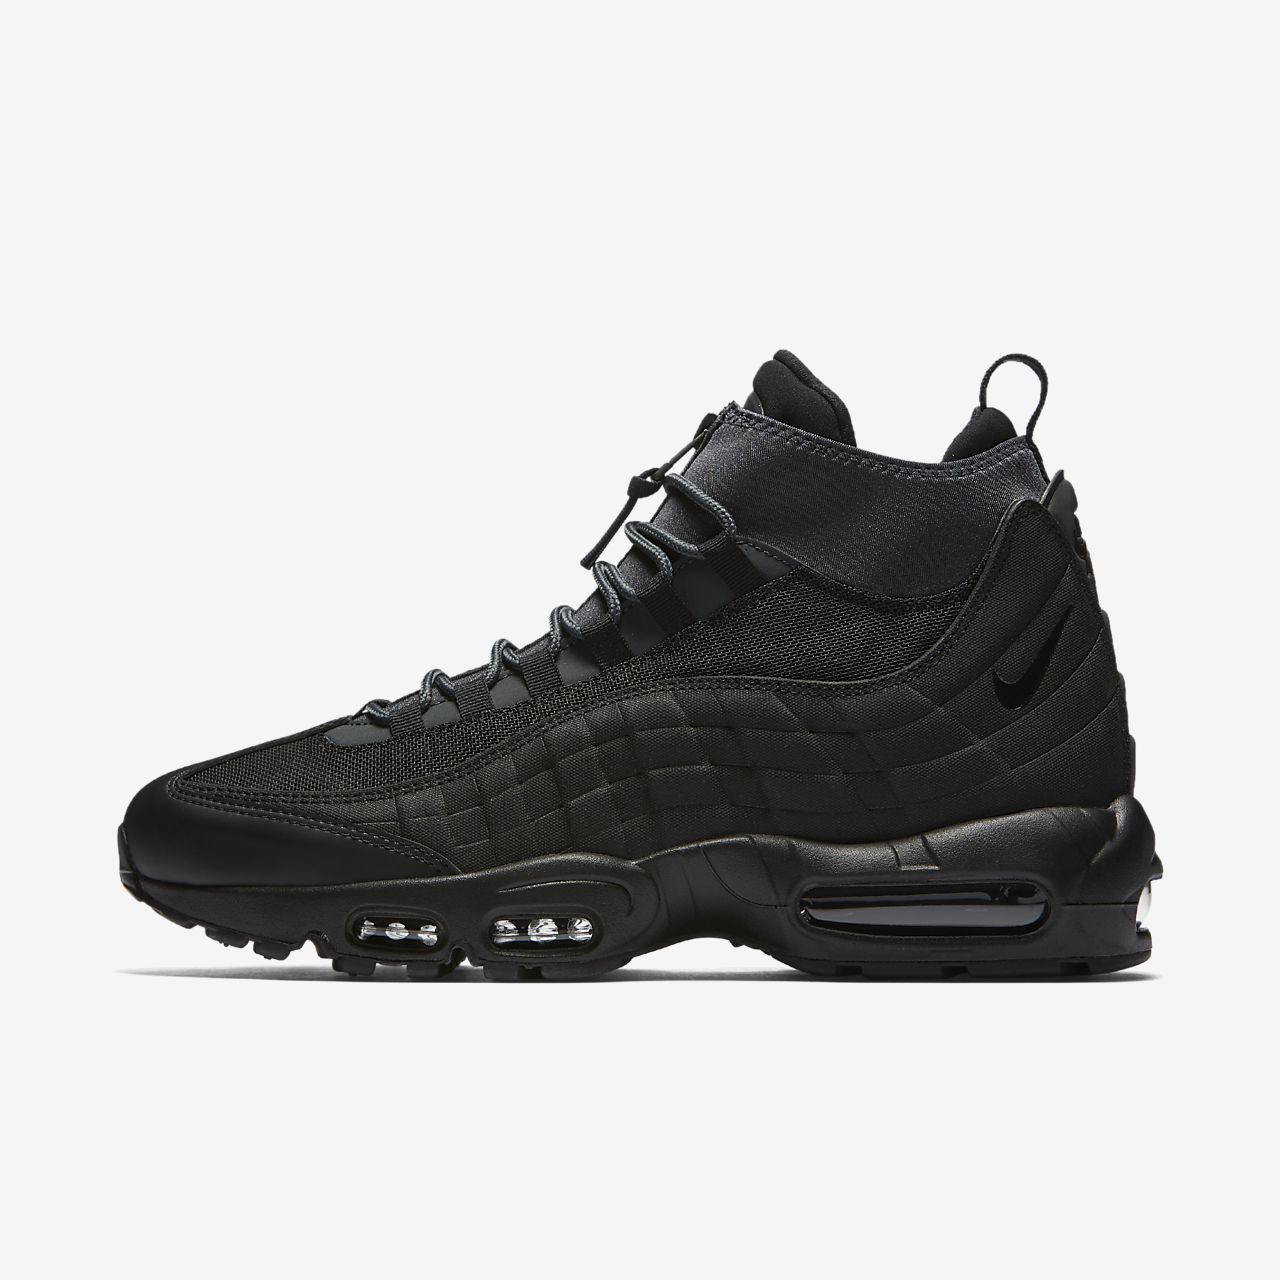 d0ac2953242 Nike Air Max 95 SneakerBoot Men s Boot Botas Nike